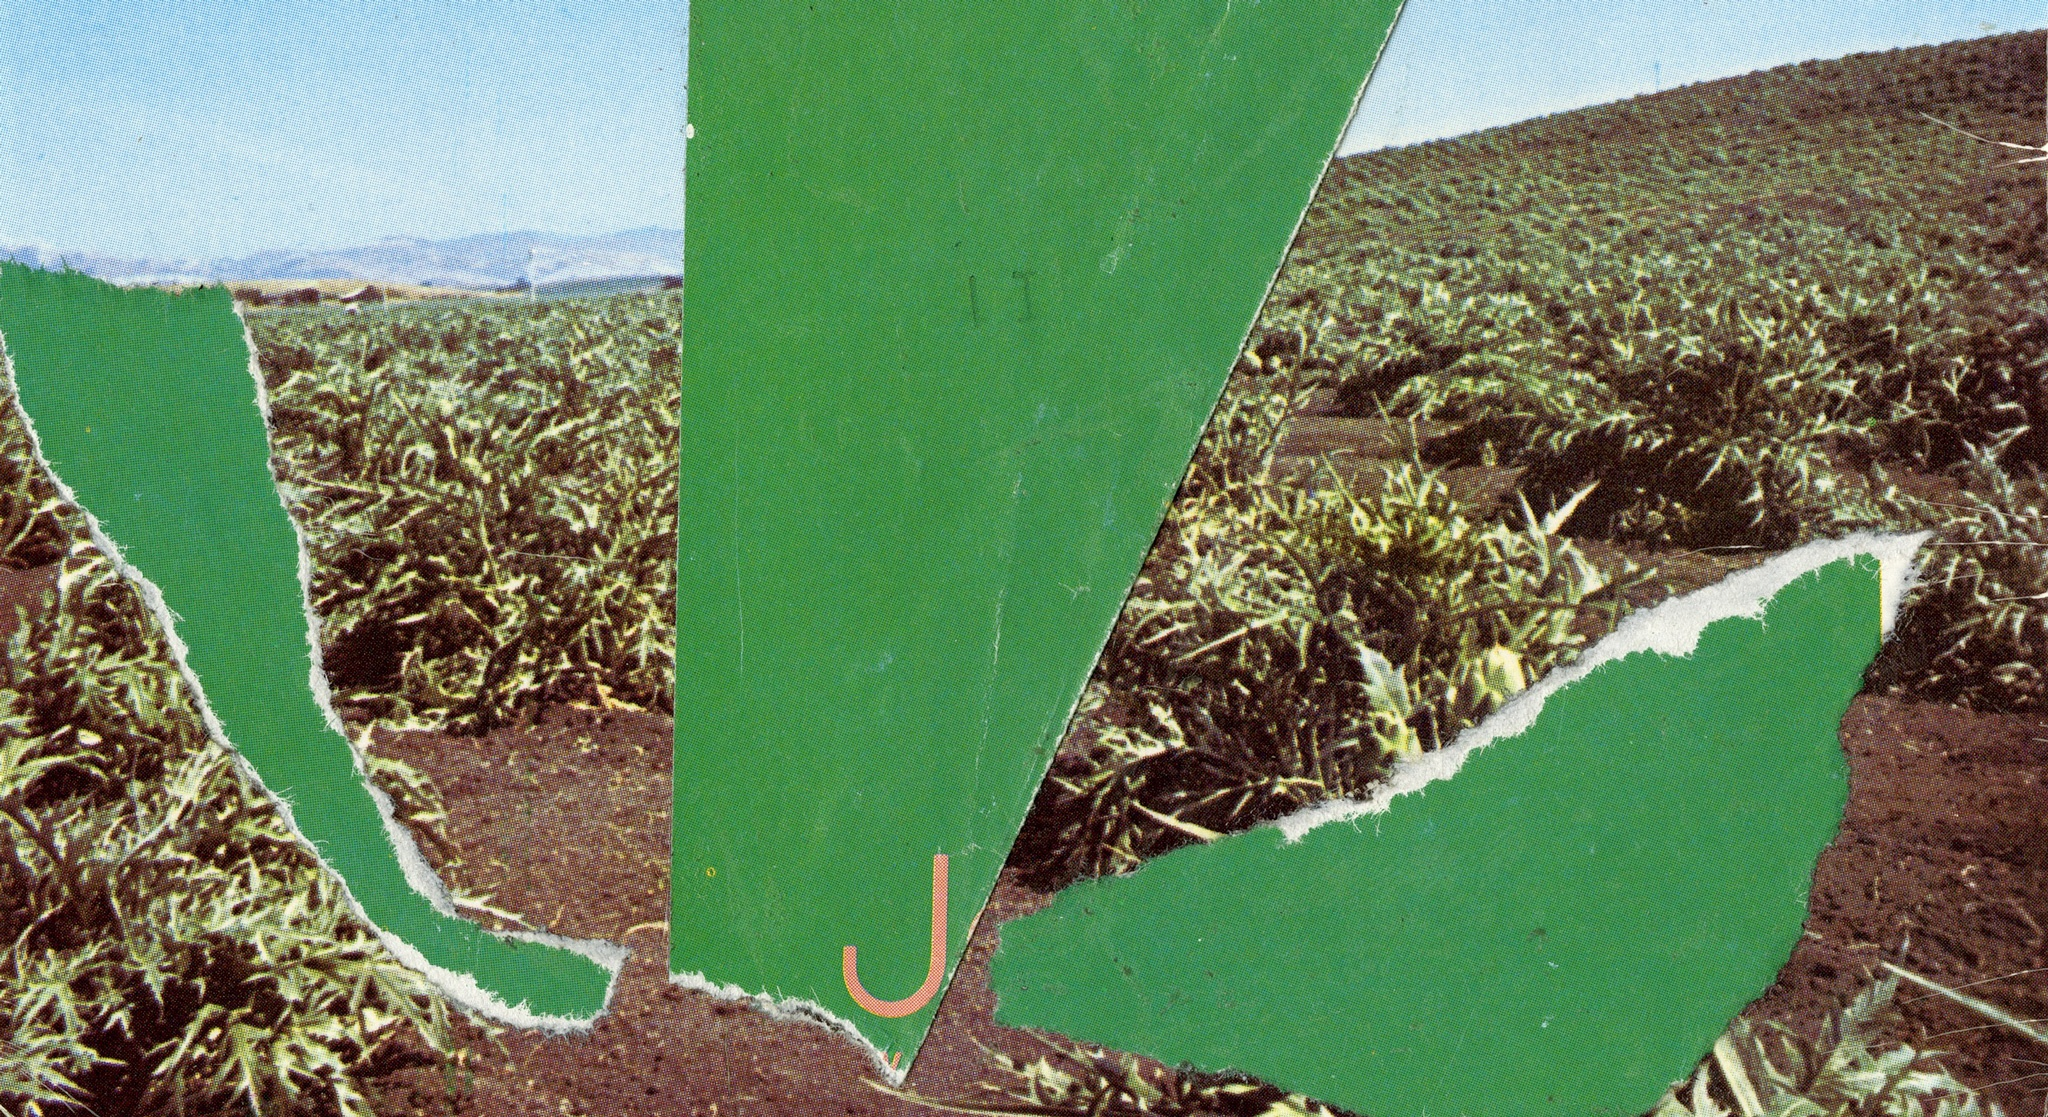 Three green abstract shapes are collaged onto a photographic landscape on a rectangular postcard.